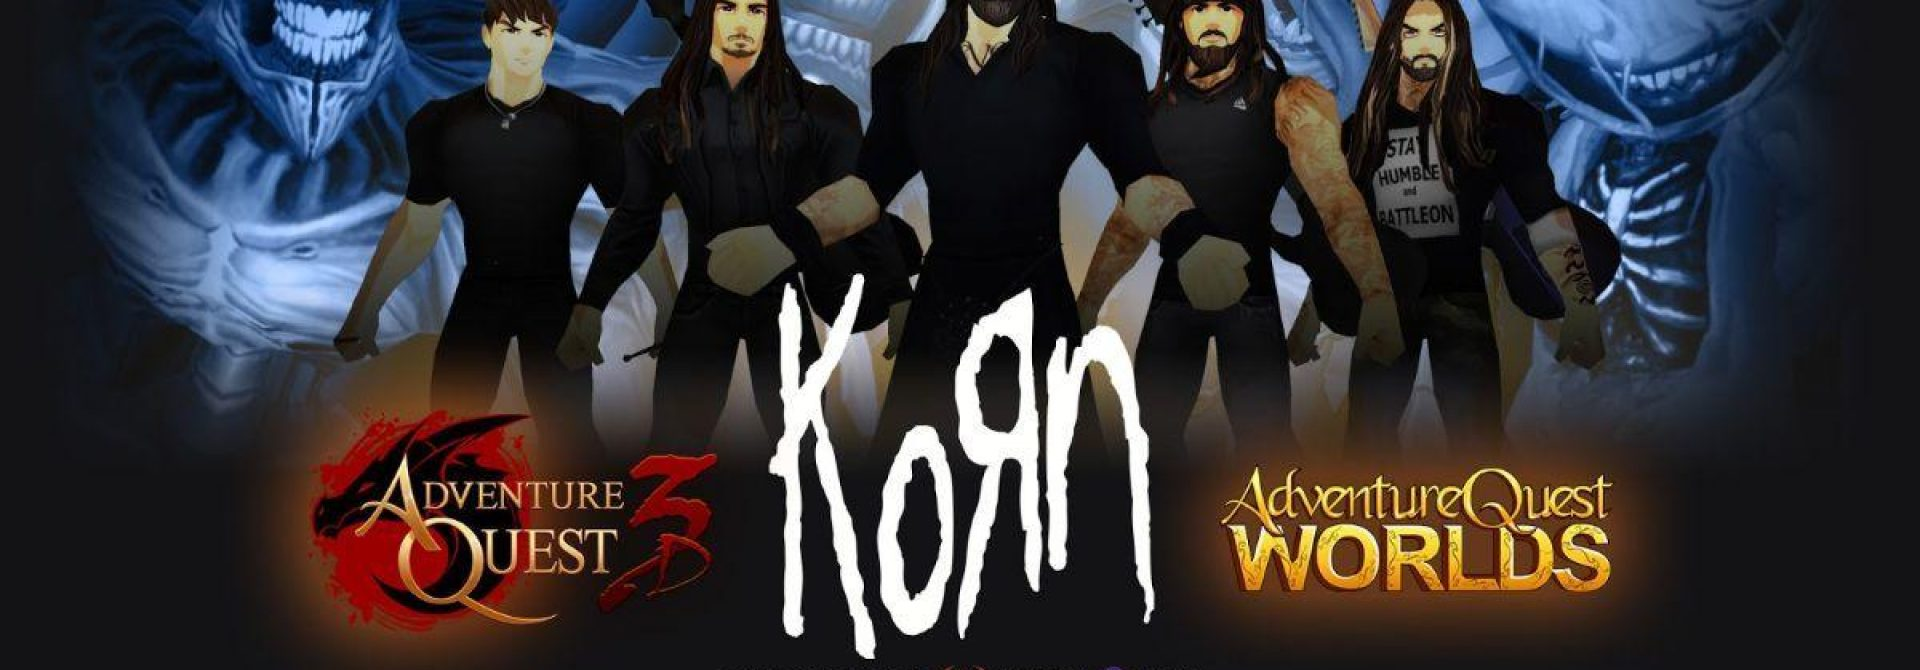 There'll Be A KORN Concert In AdventureQuest Tomorrow